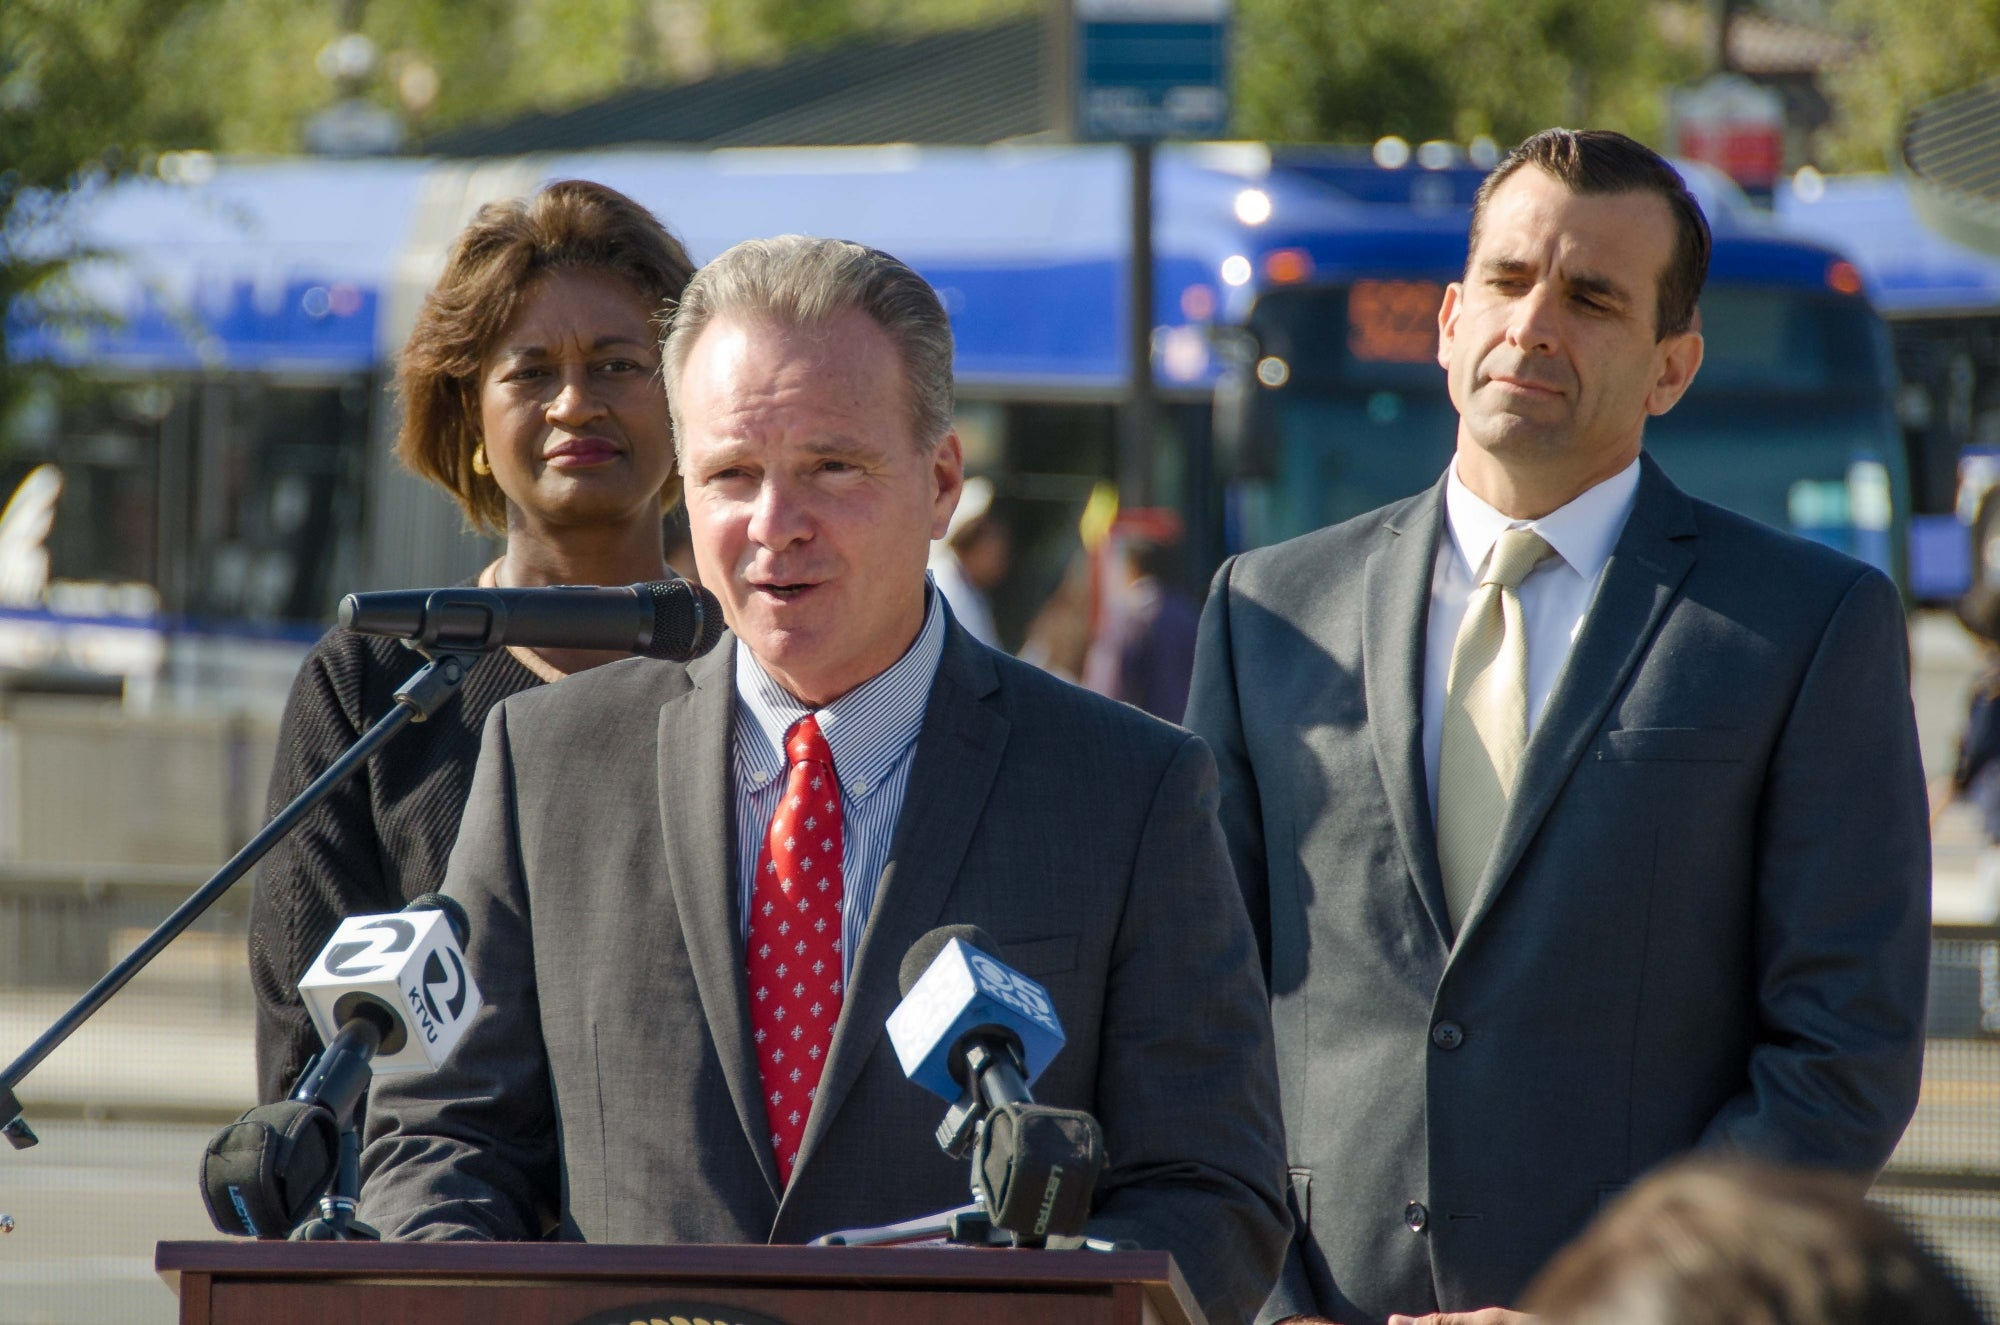 MTC Chair Dave Cortese speaks at the TRIP press conference, flanked by VTA General Manager Nuria Fernandez (left) and MTC Commissioner and San Jose Mayor Sam Liccardo (right).